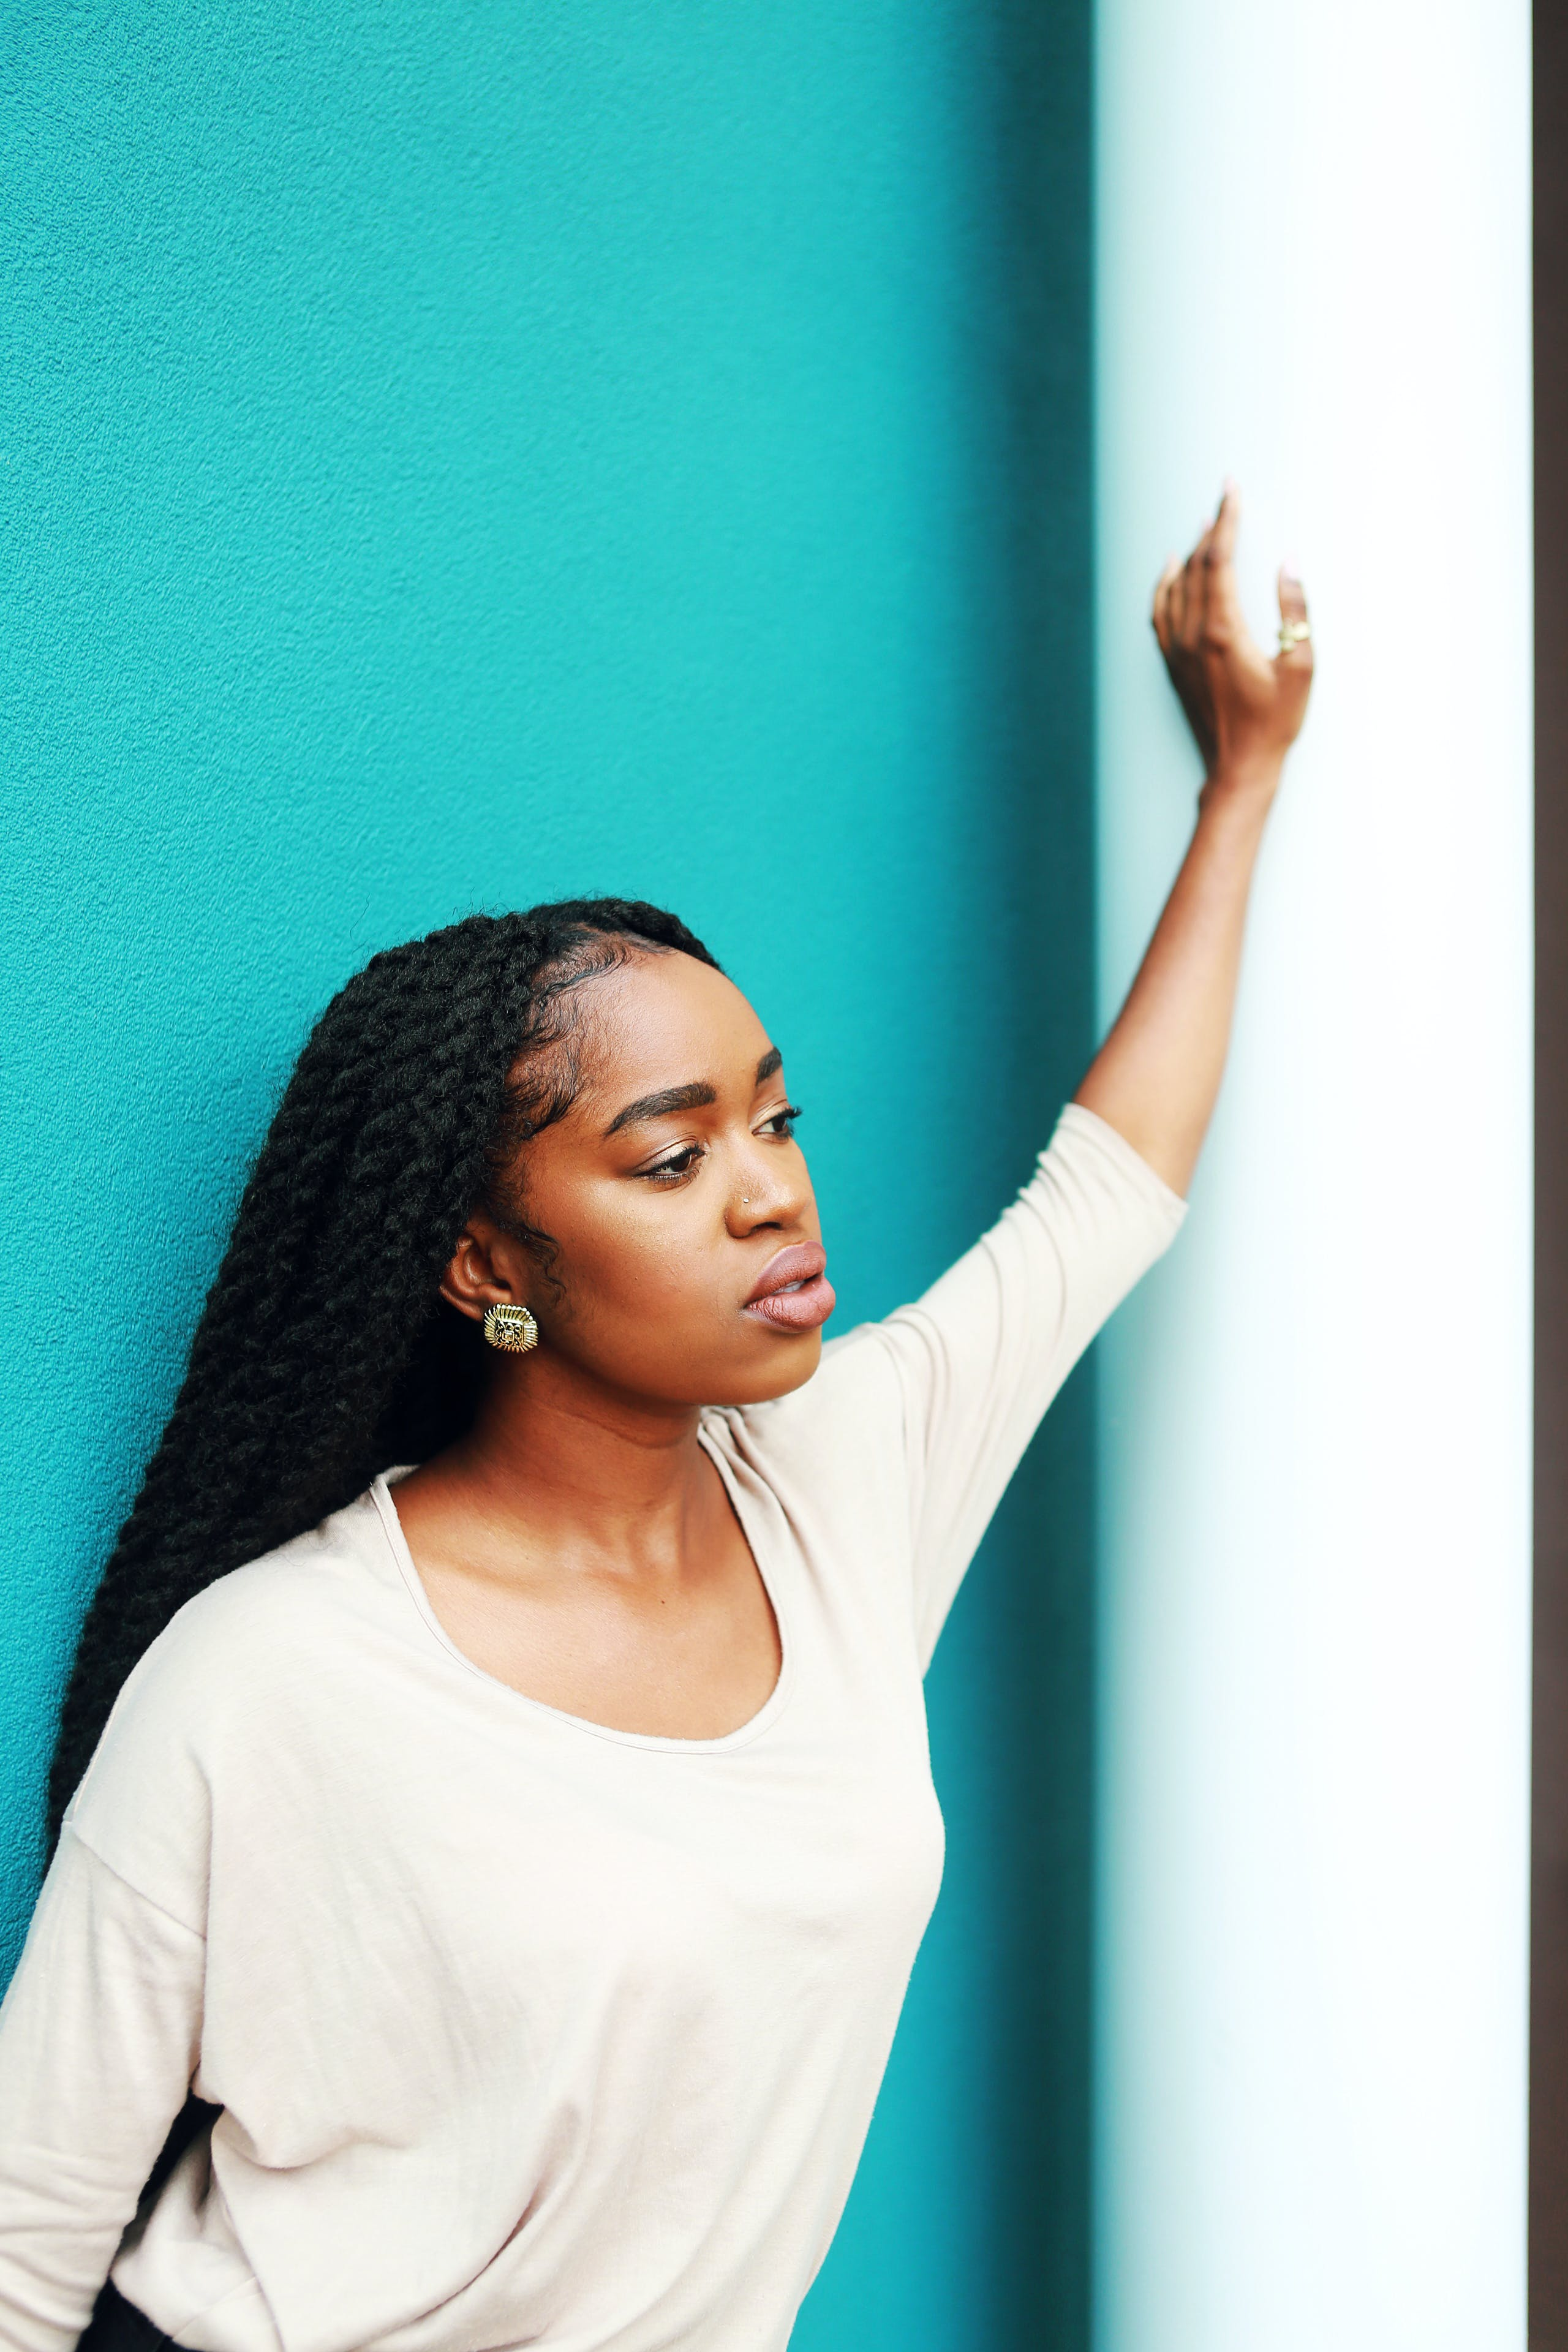 Woman Leaning Left Hand on Wall